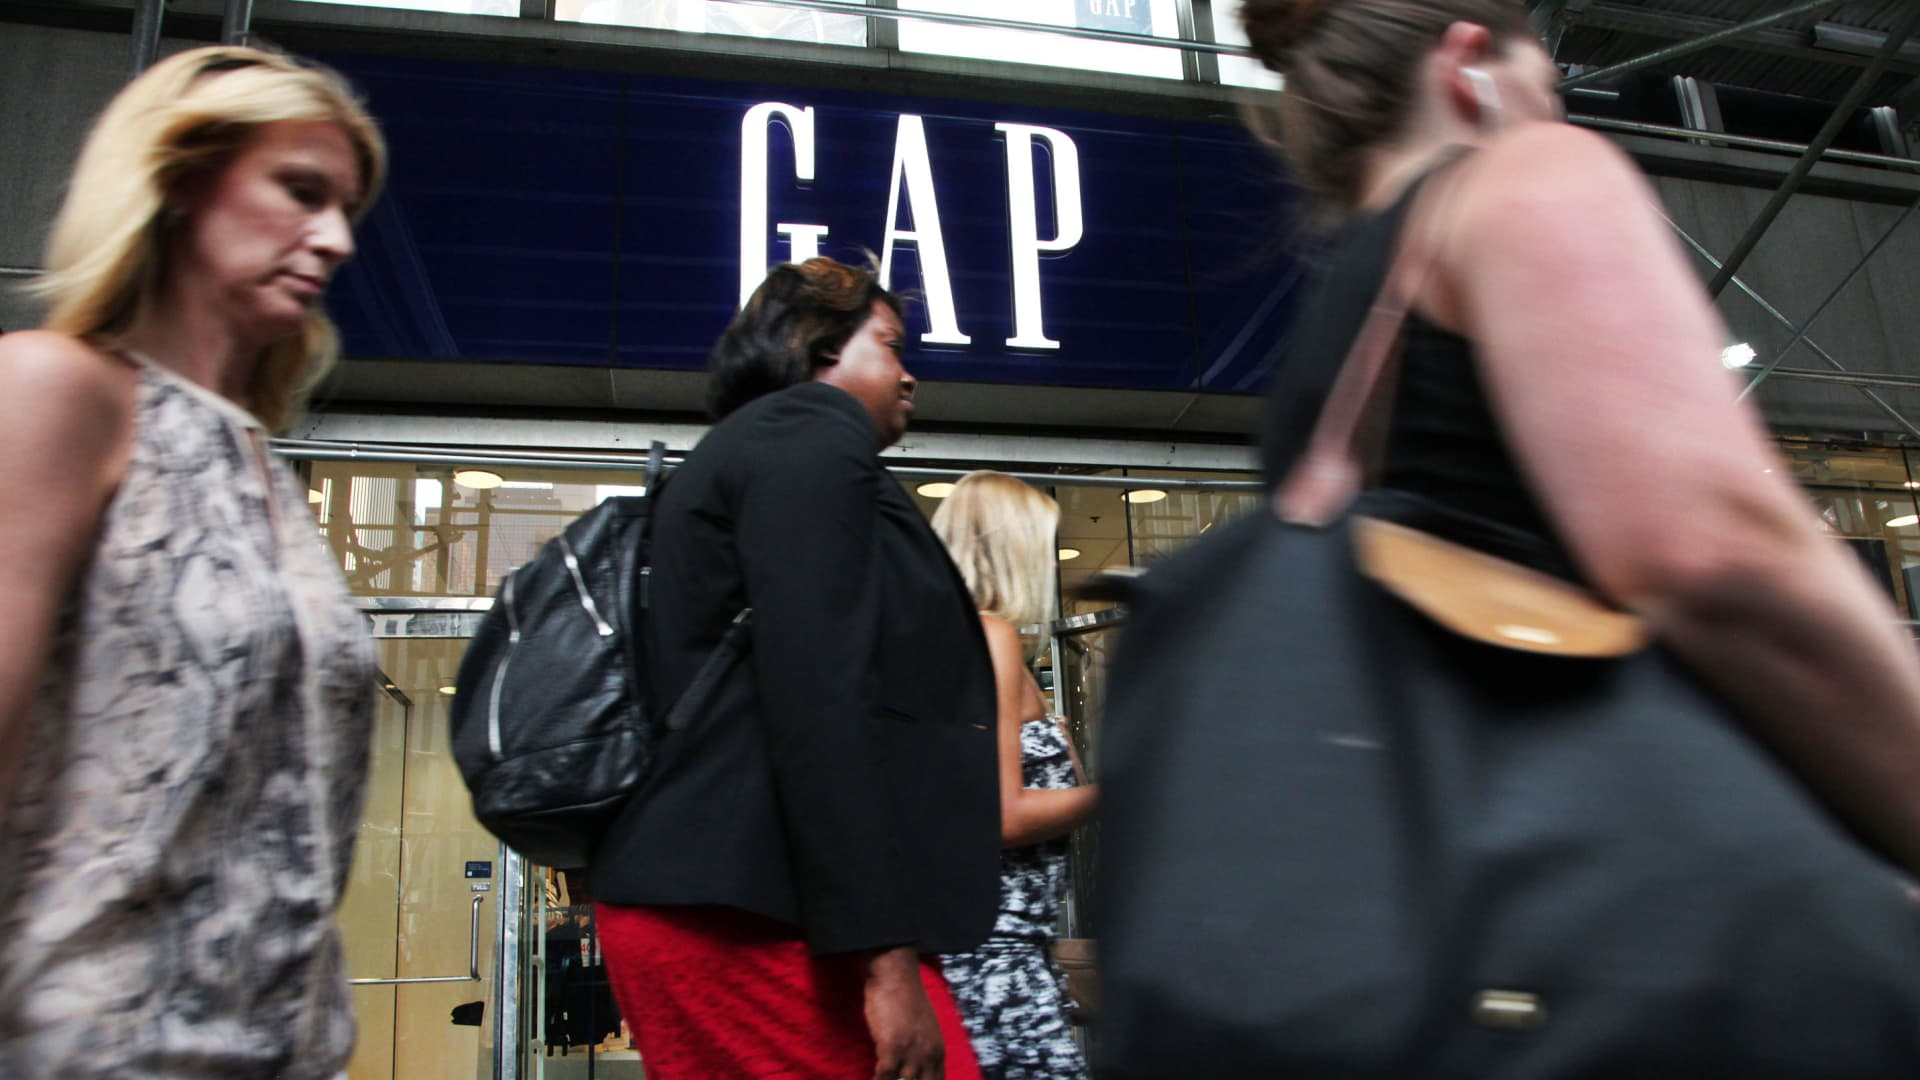 Pedestrians pass in front of a GAP store in New York.